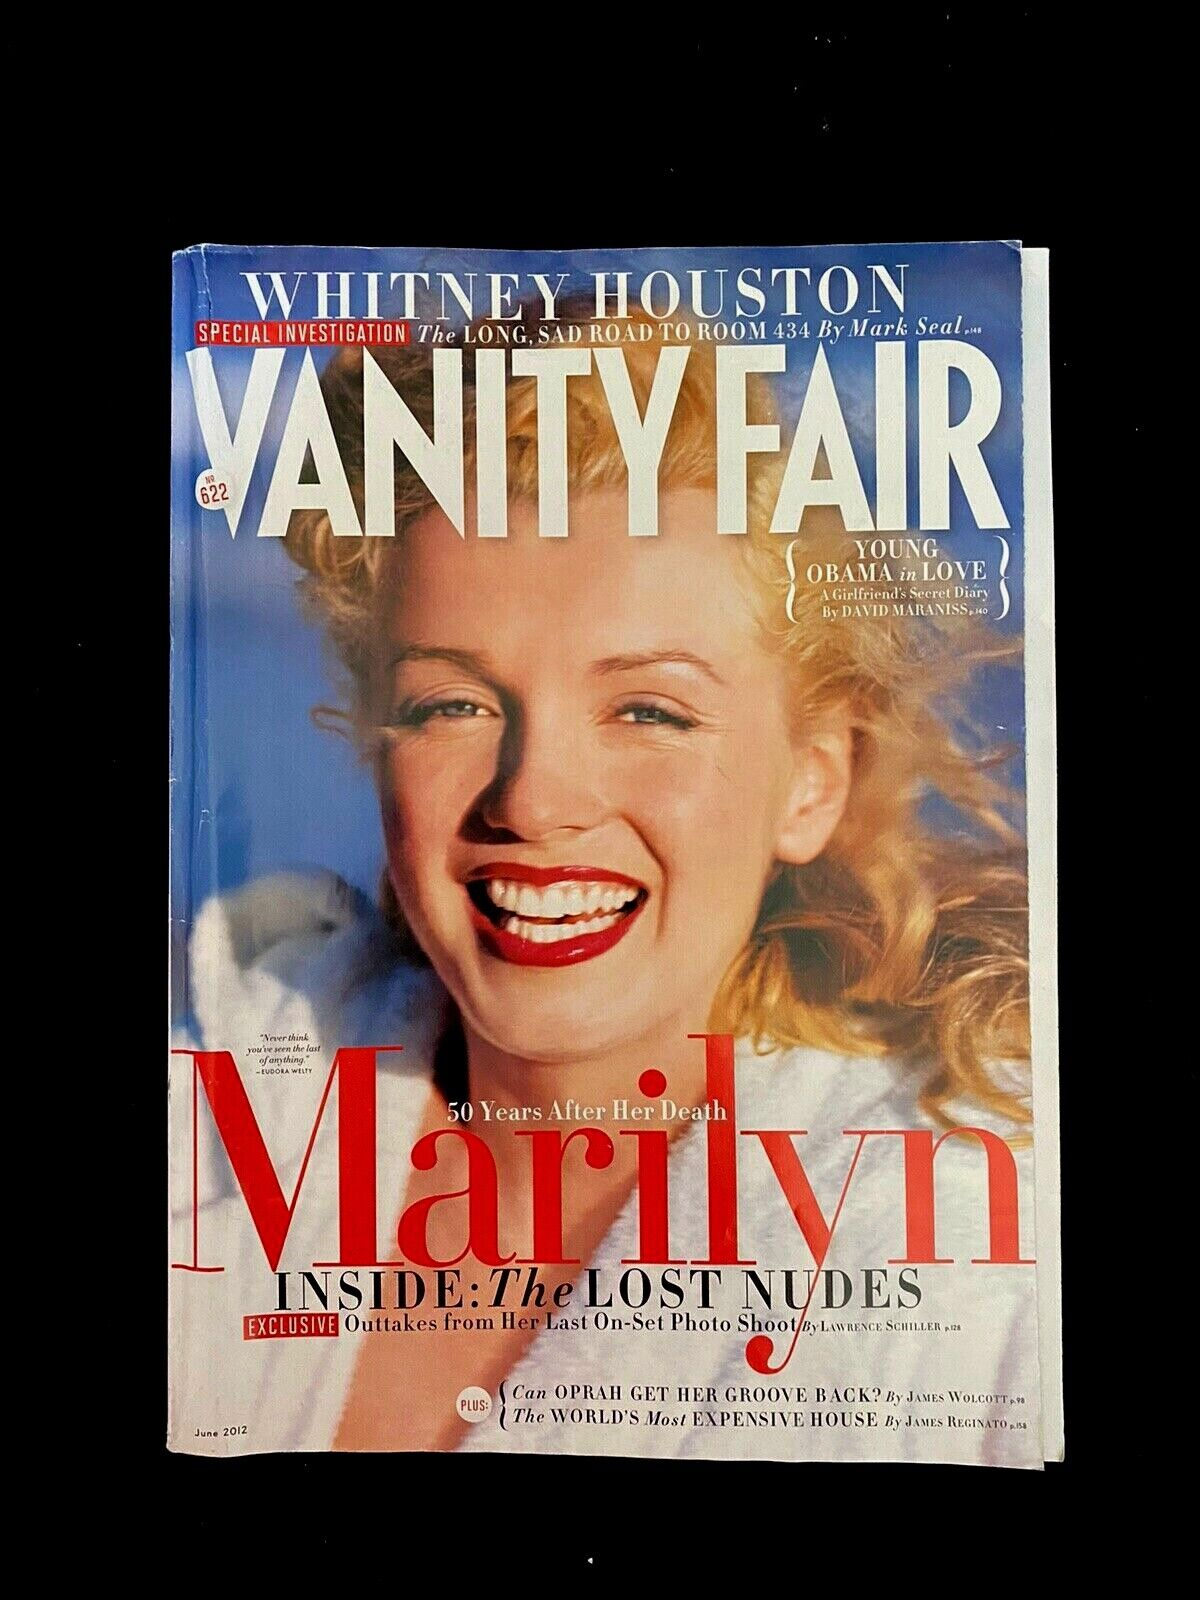 VANITY FAIR MAGAZINE WITH MARILYN MONROE ON COVER. June 2012 GC - $6.99